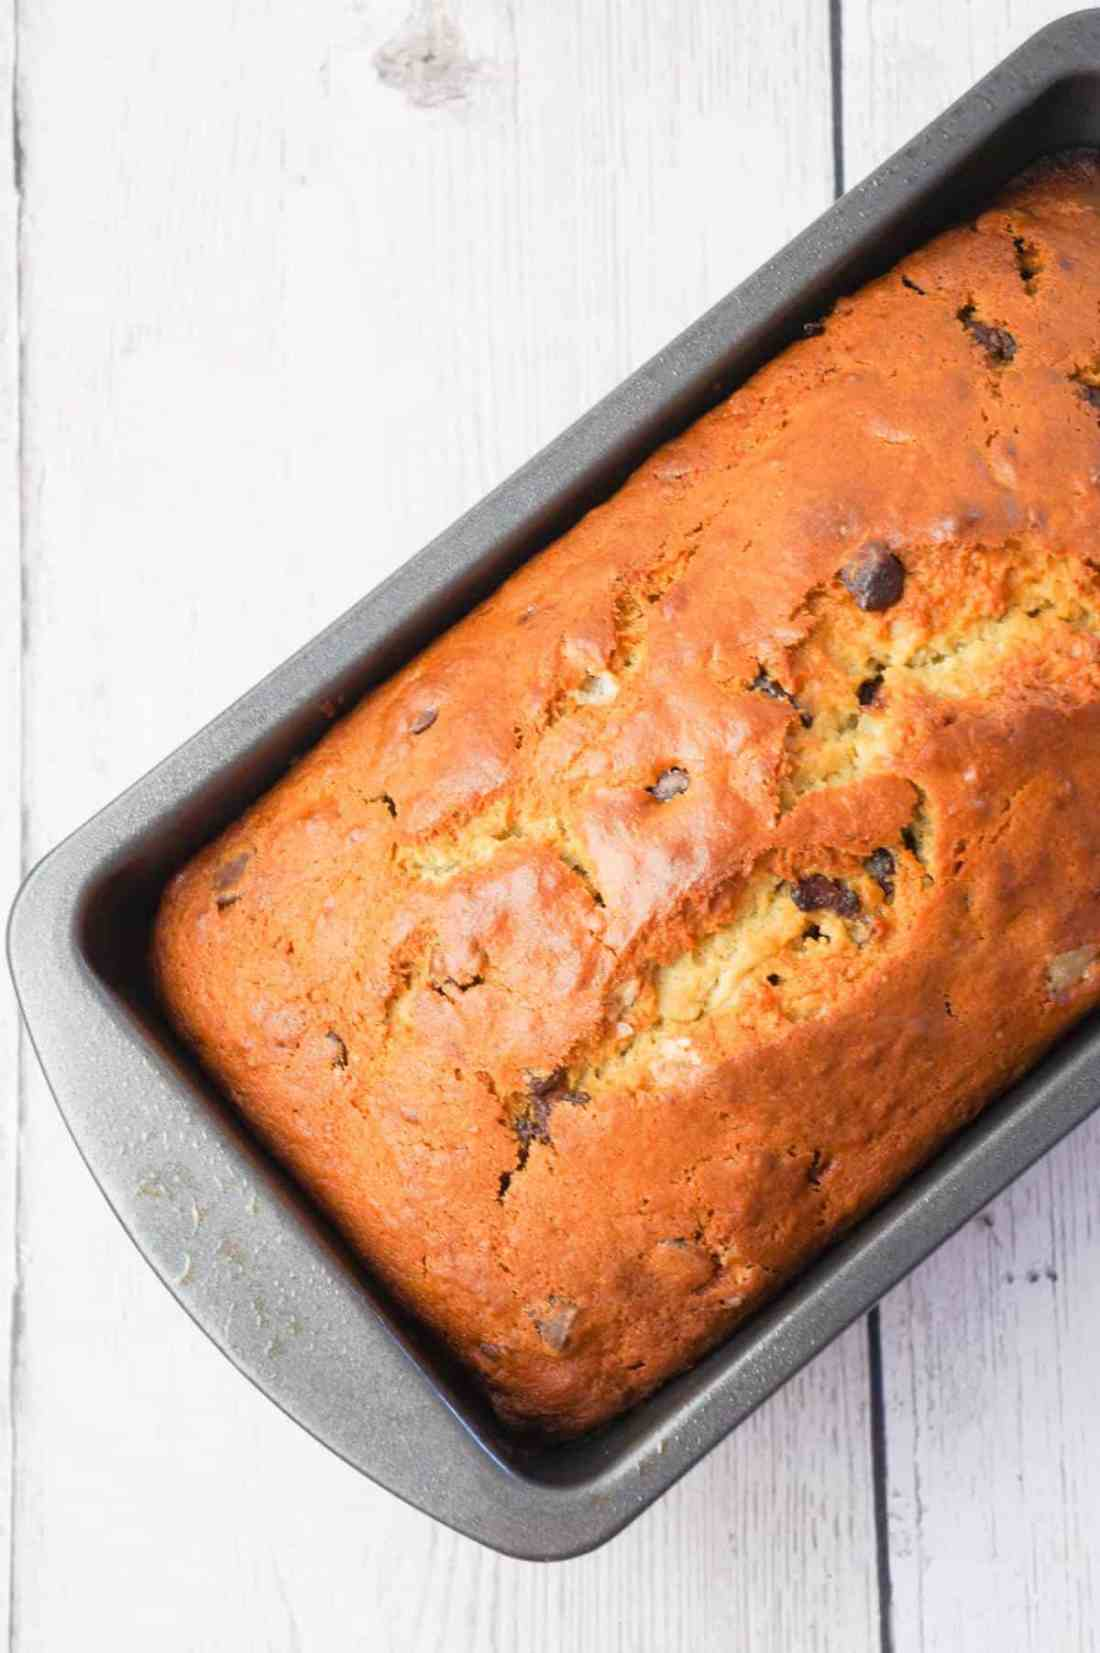 Chocolate Chip Banana Bread is a tasty treat made with ripe bananas and loaded with semi-sweet chocolate chips.